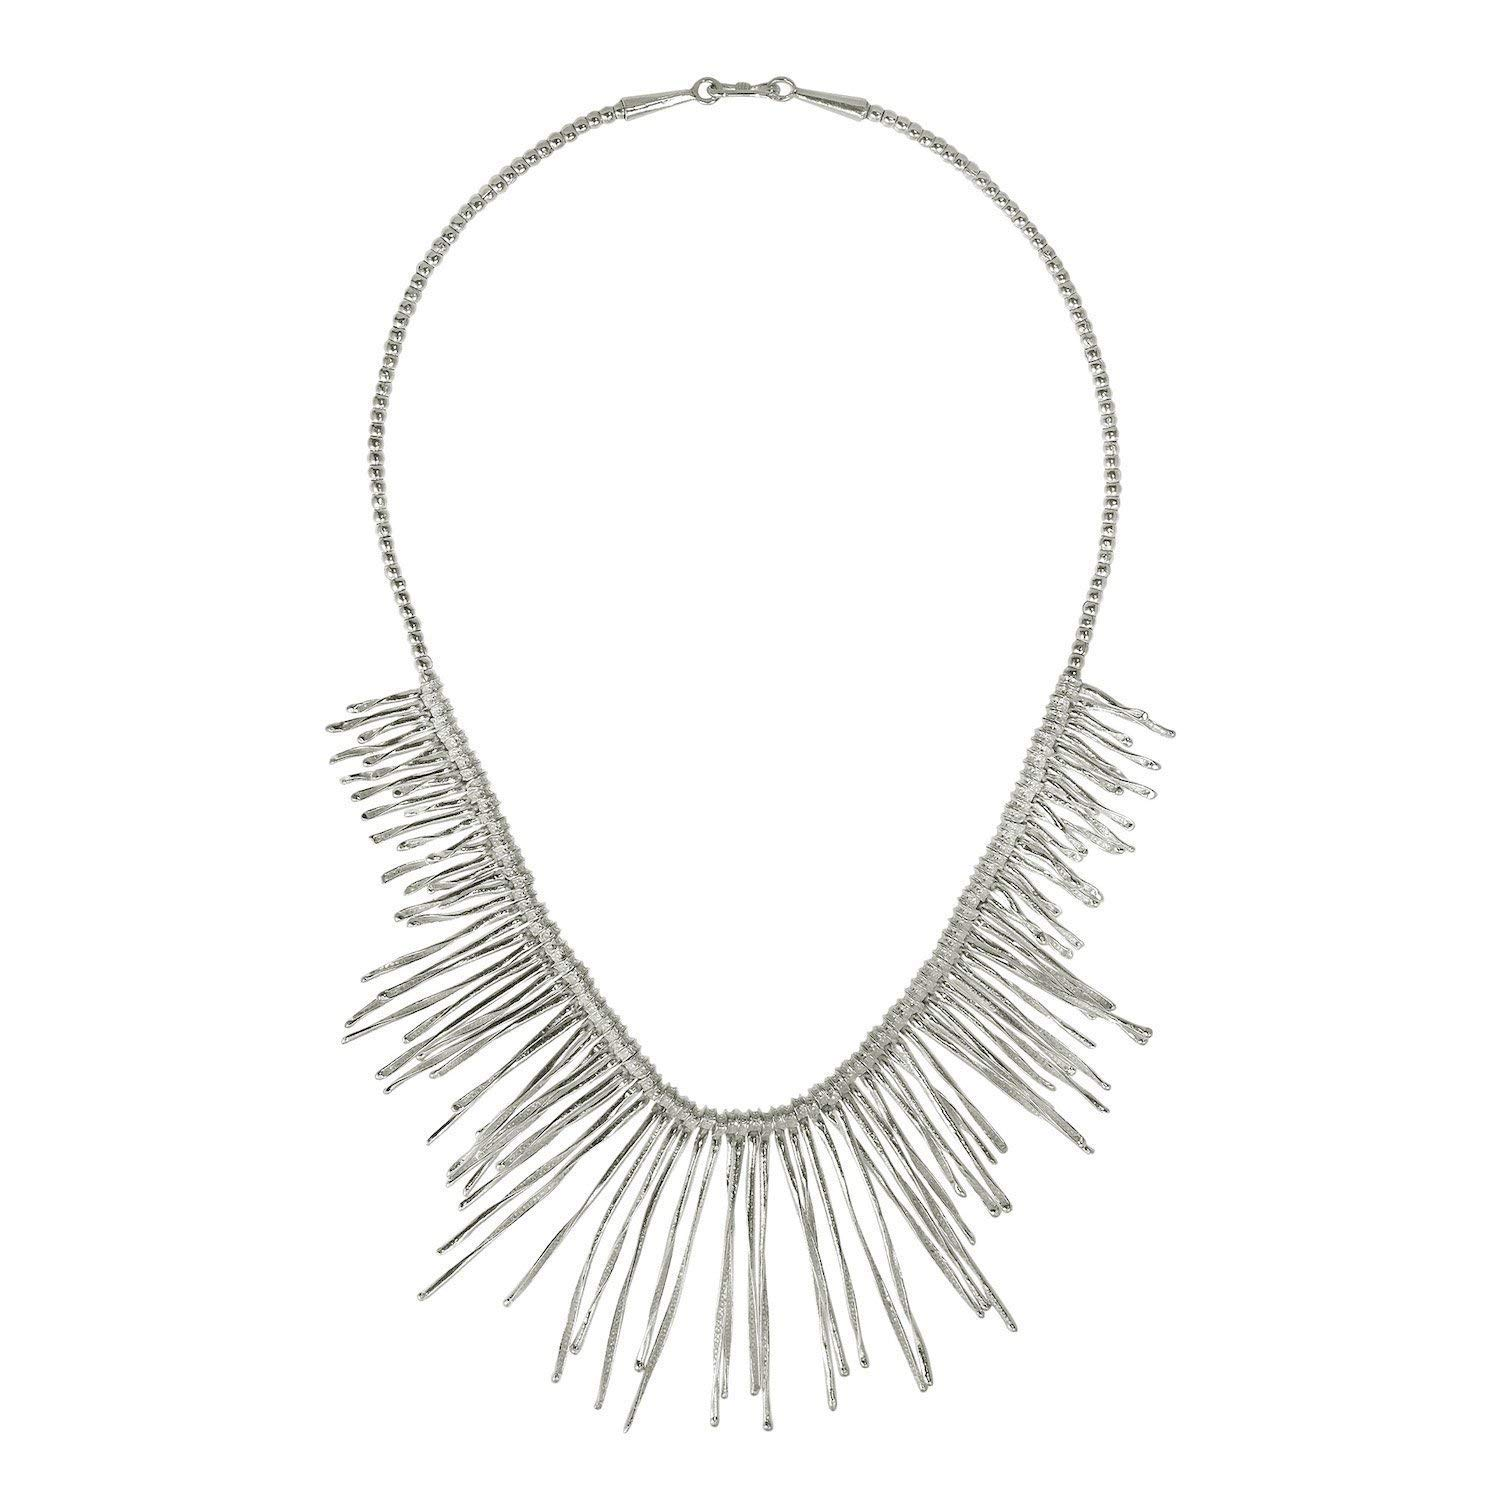 Bridal Necklace Sterling Silver Statement Rays Necklace,SilverShapes Handmade impressive Silver Beads Necklace with Spikes Rivet Pendant Beautiful Gift for Her